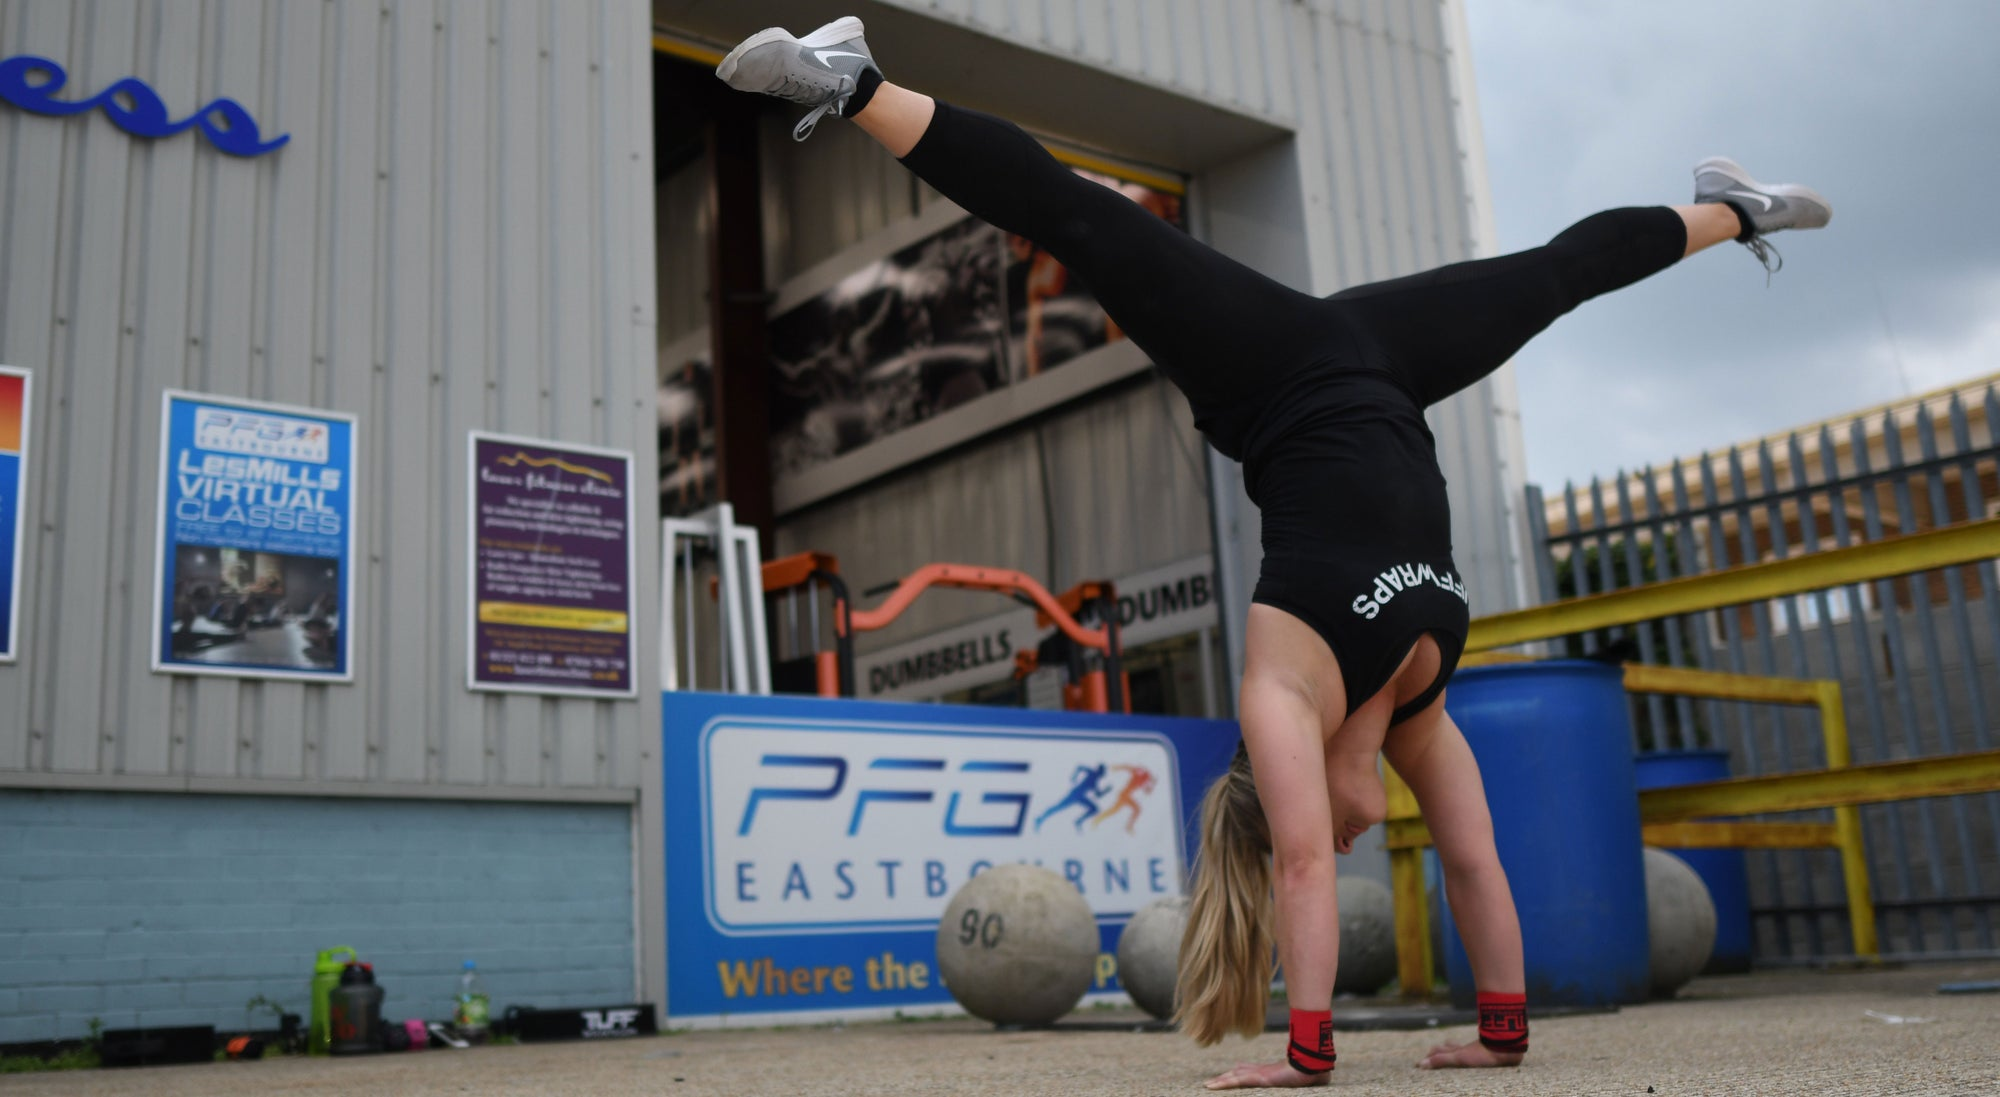 TuffWraps UK Team Day @ Performance Fitness Gym Eastbourne